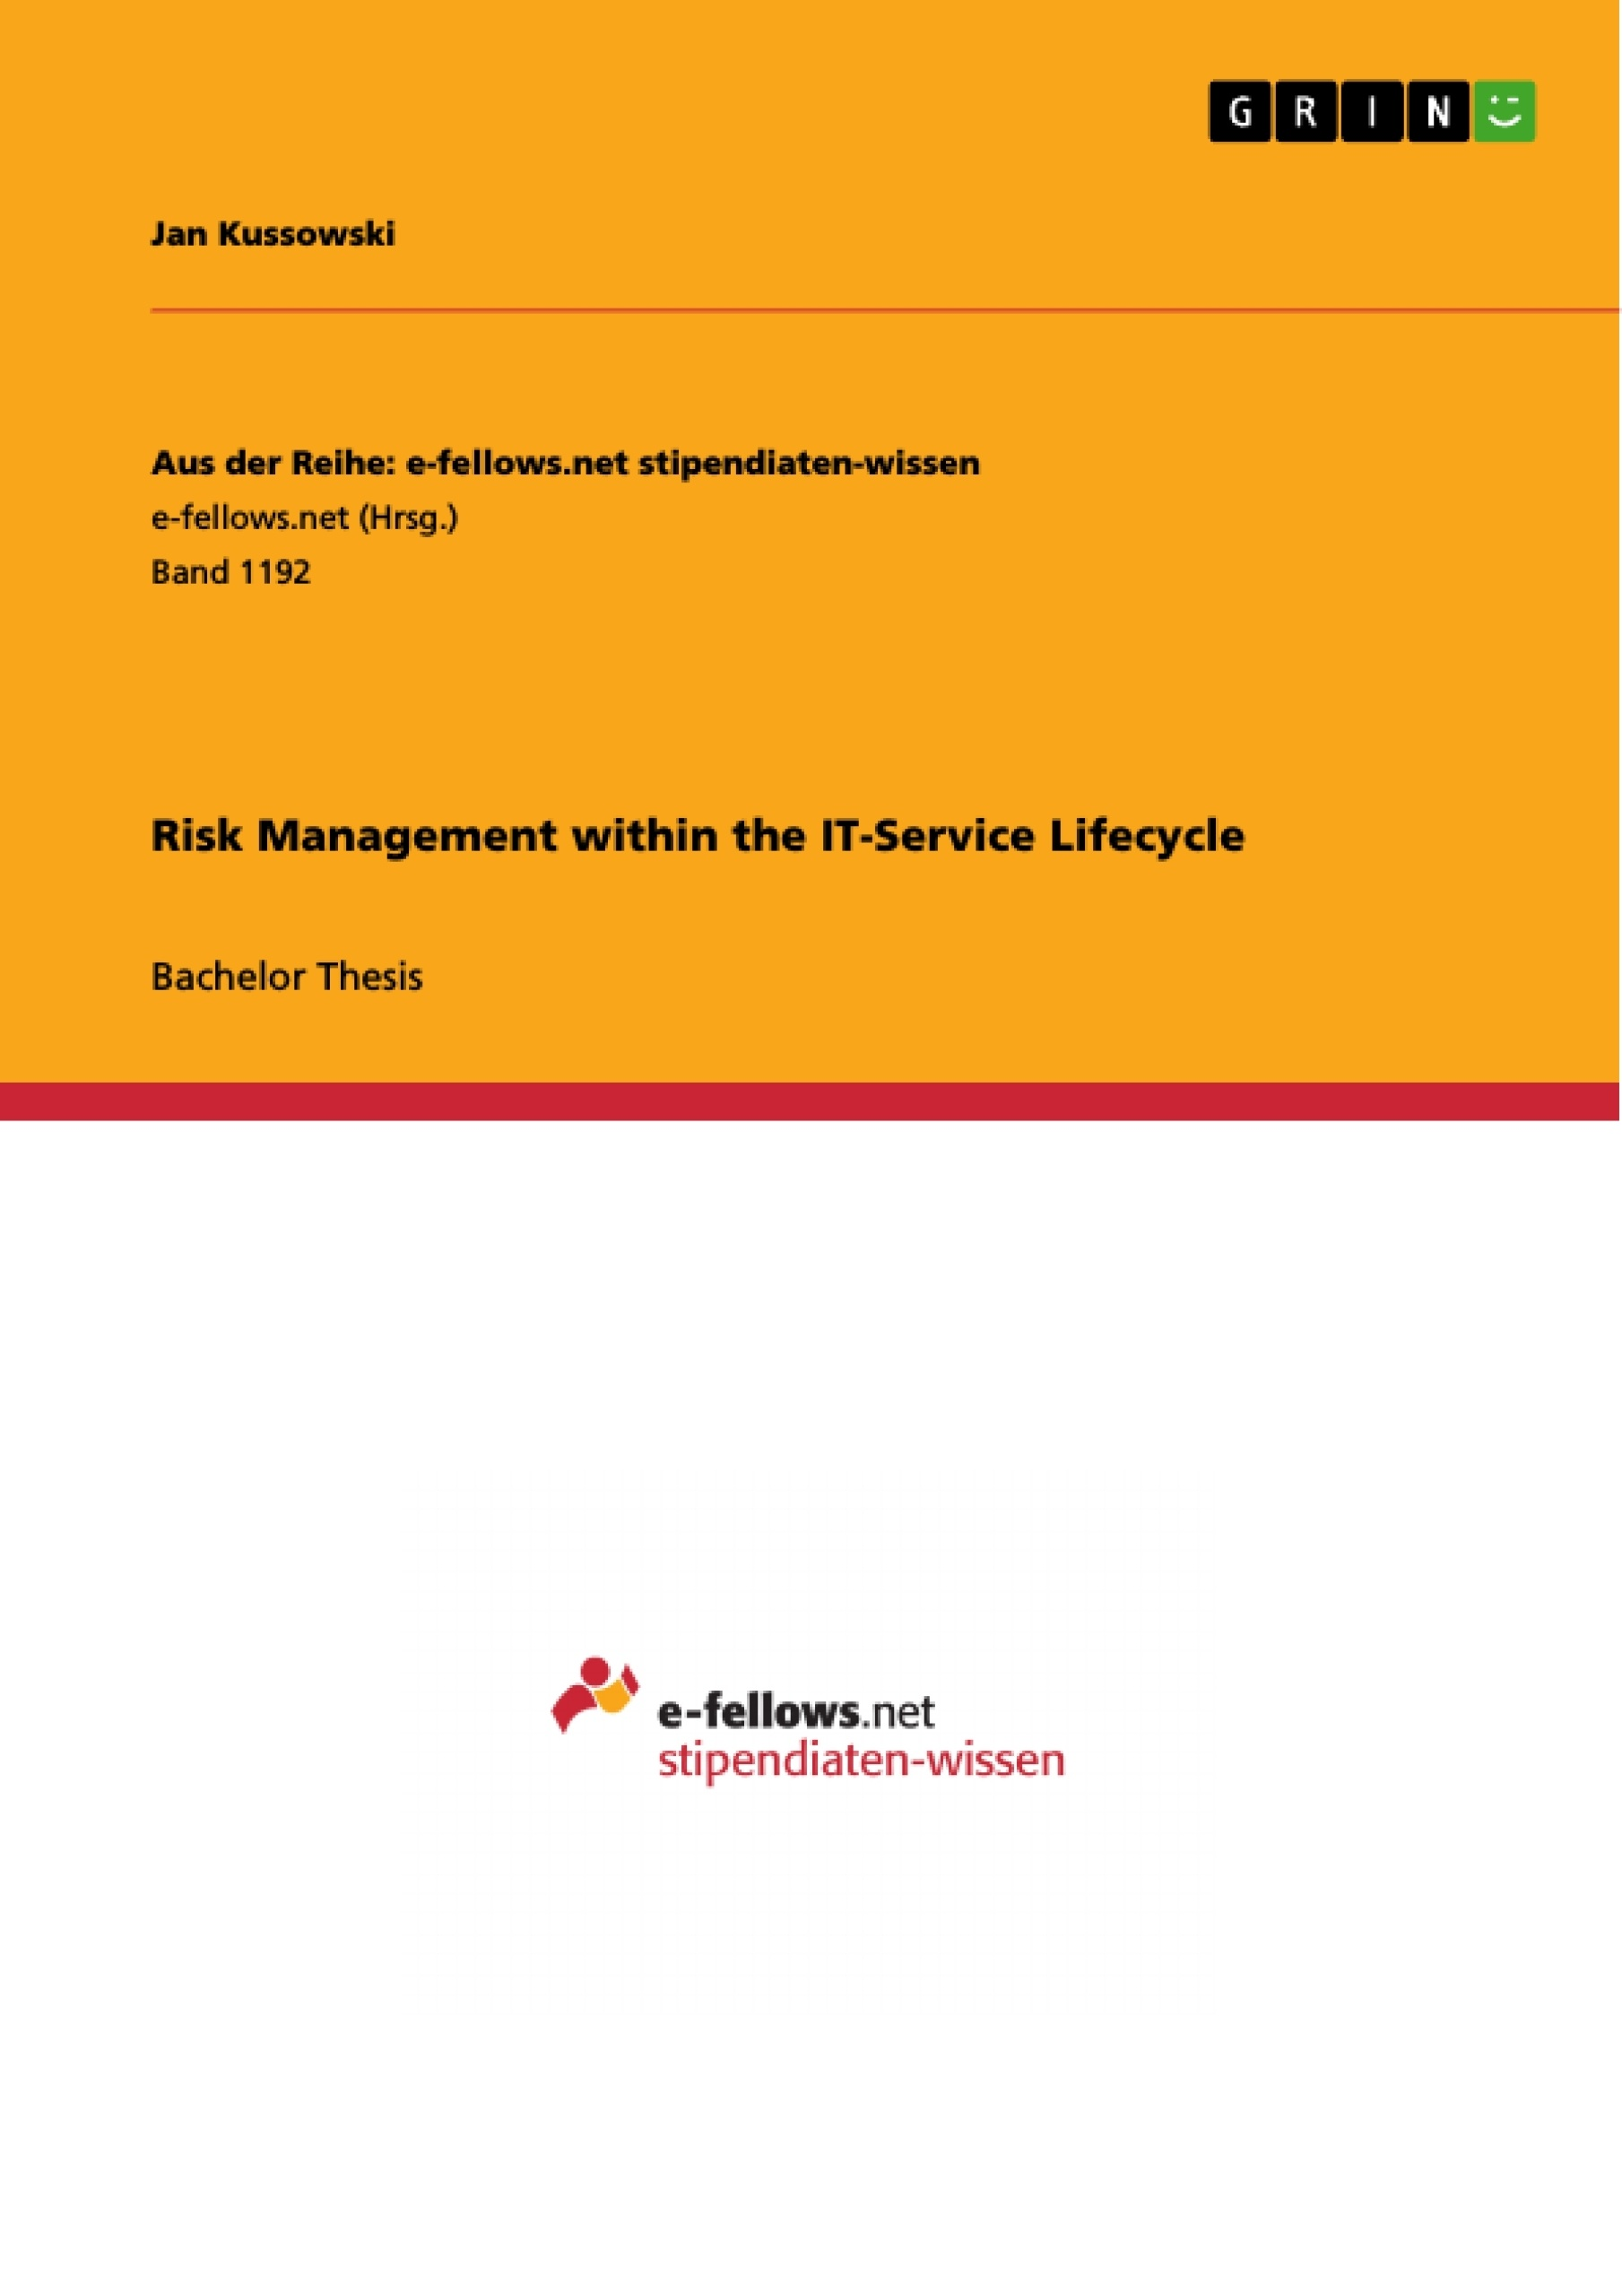 Title: Risk Management within the IT-Service Lifecycle